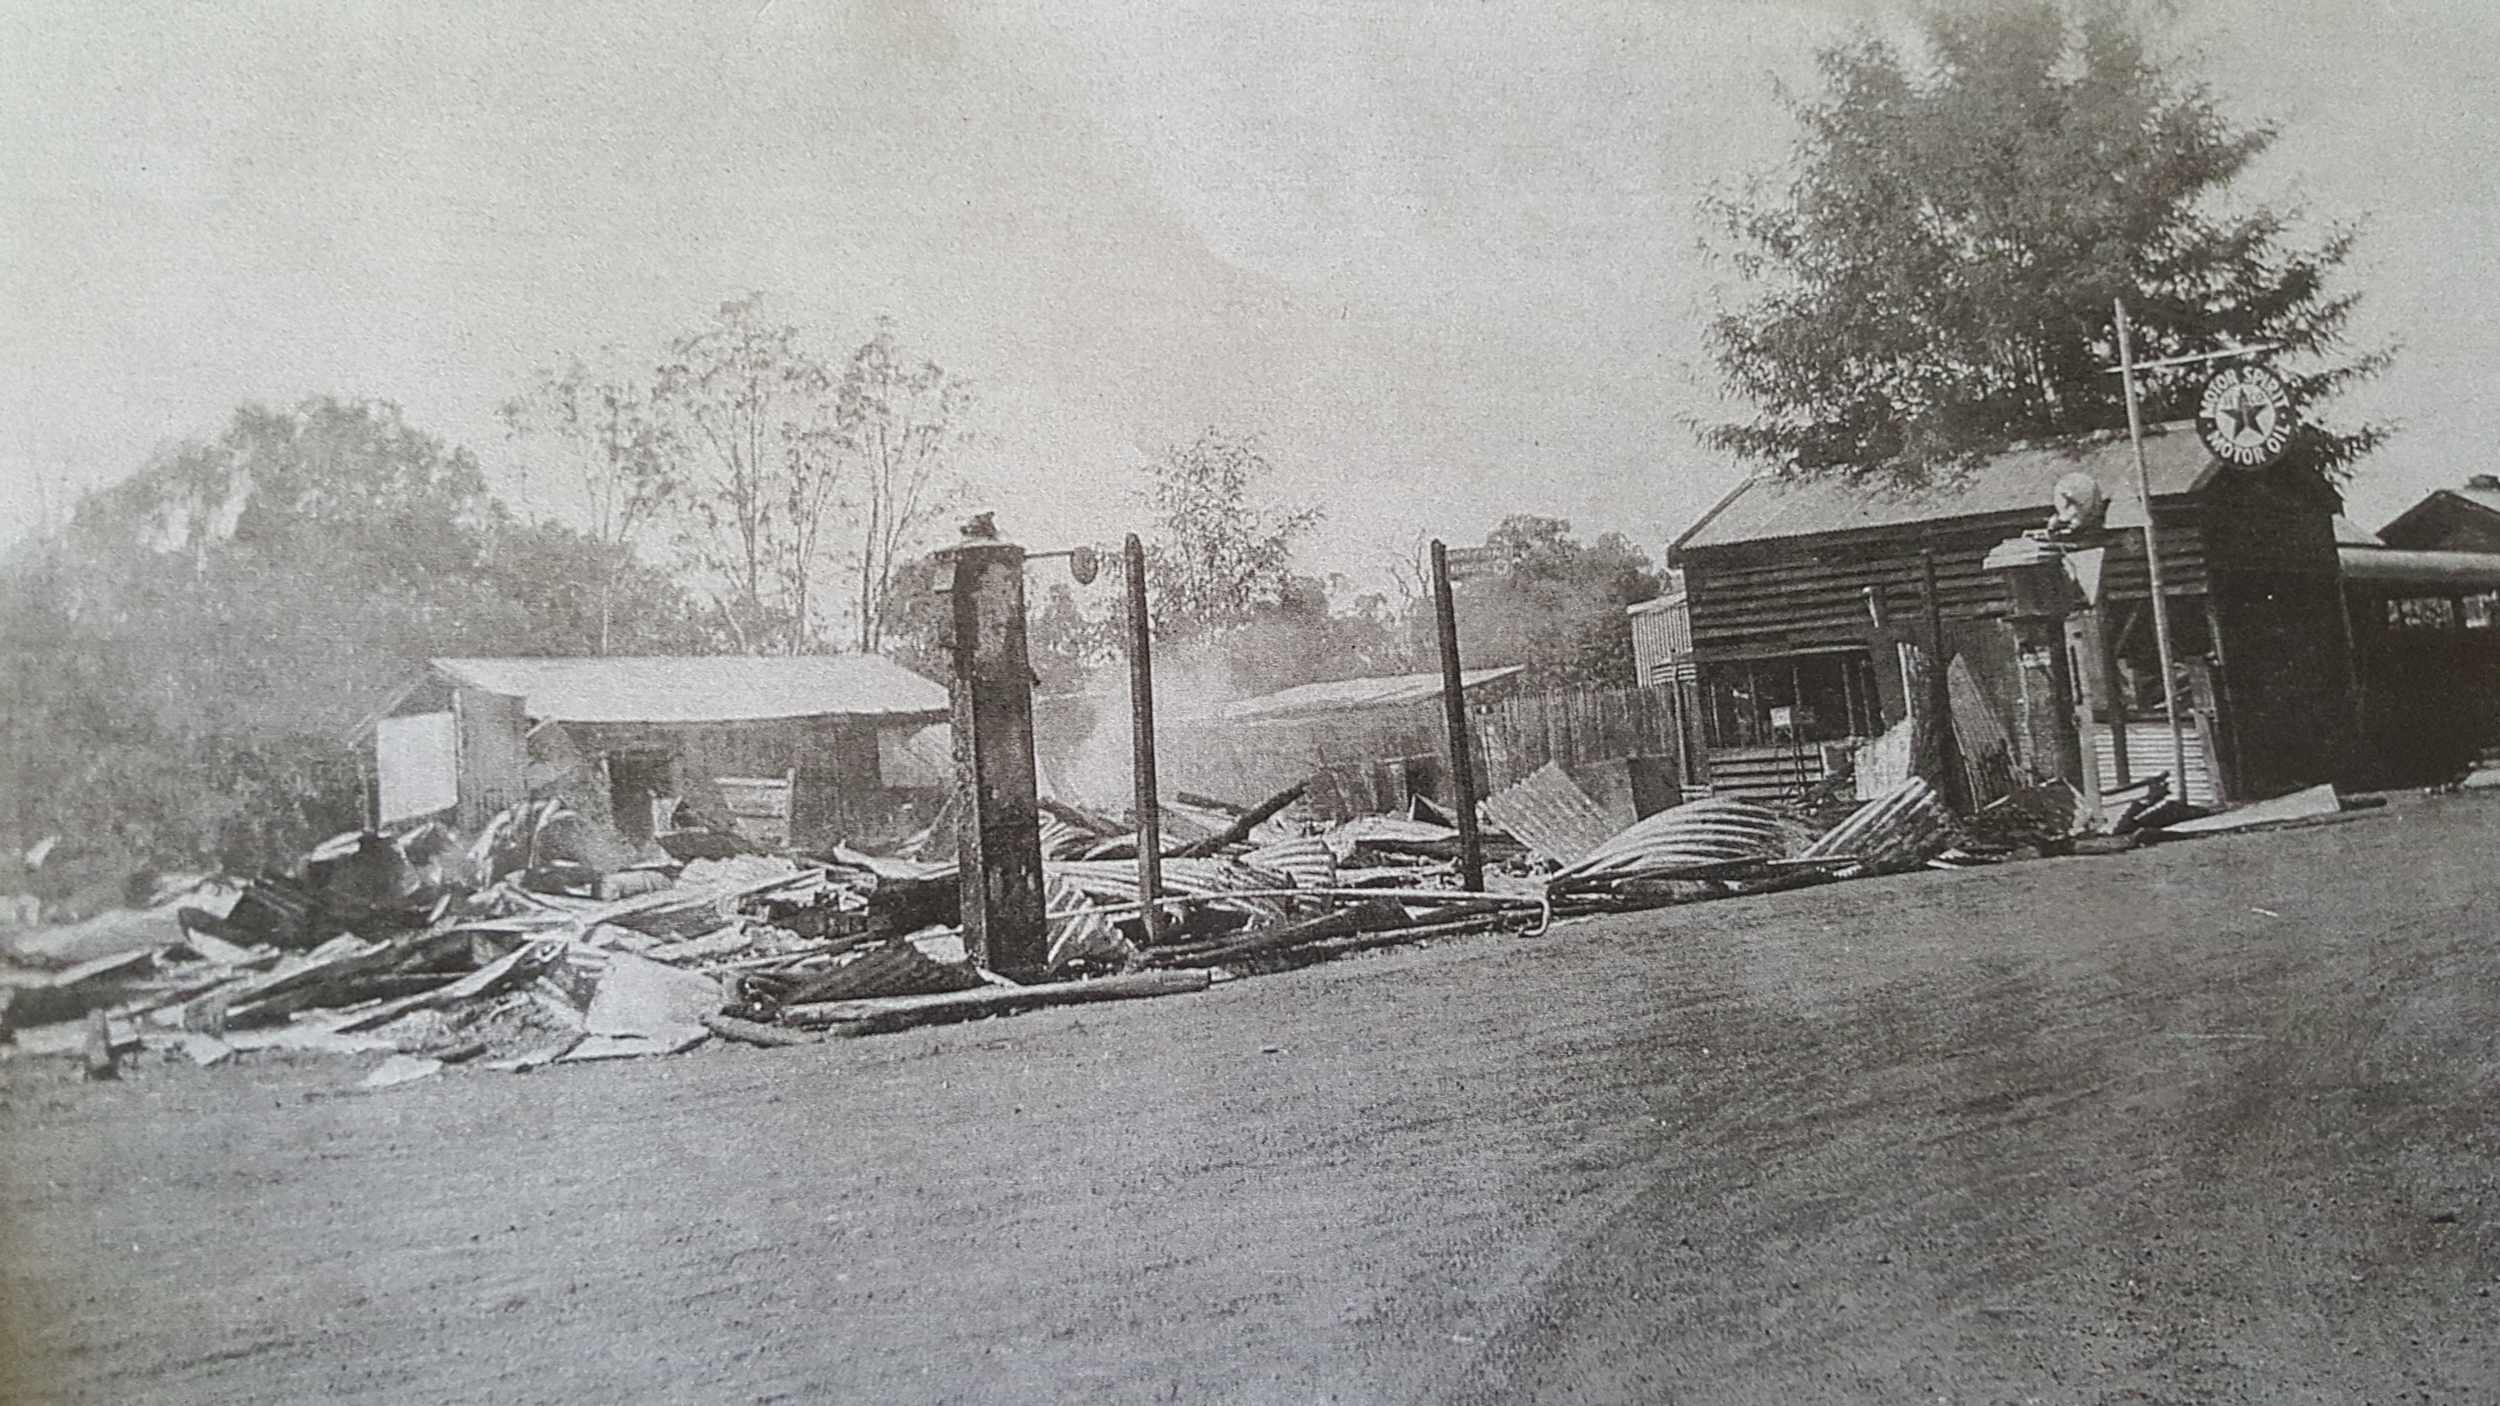 The general store in Balingup that is mentioned by Mrs Happ in the newspaper article below. This photo was taken when the general store burnt down in the early 1930's.